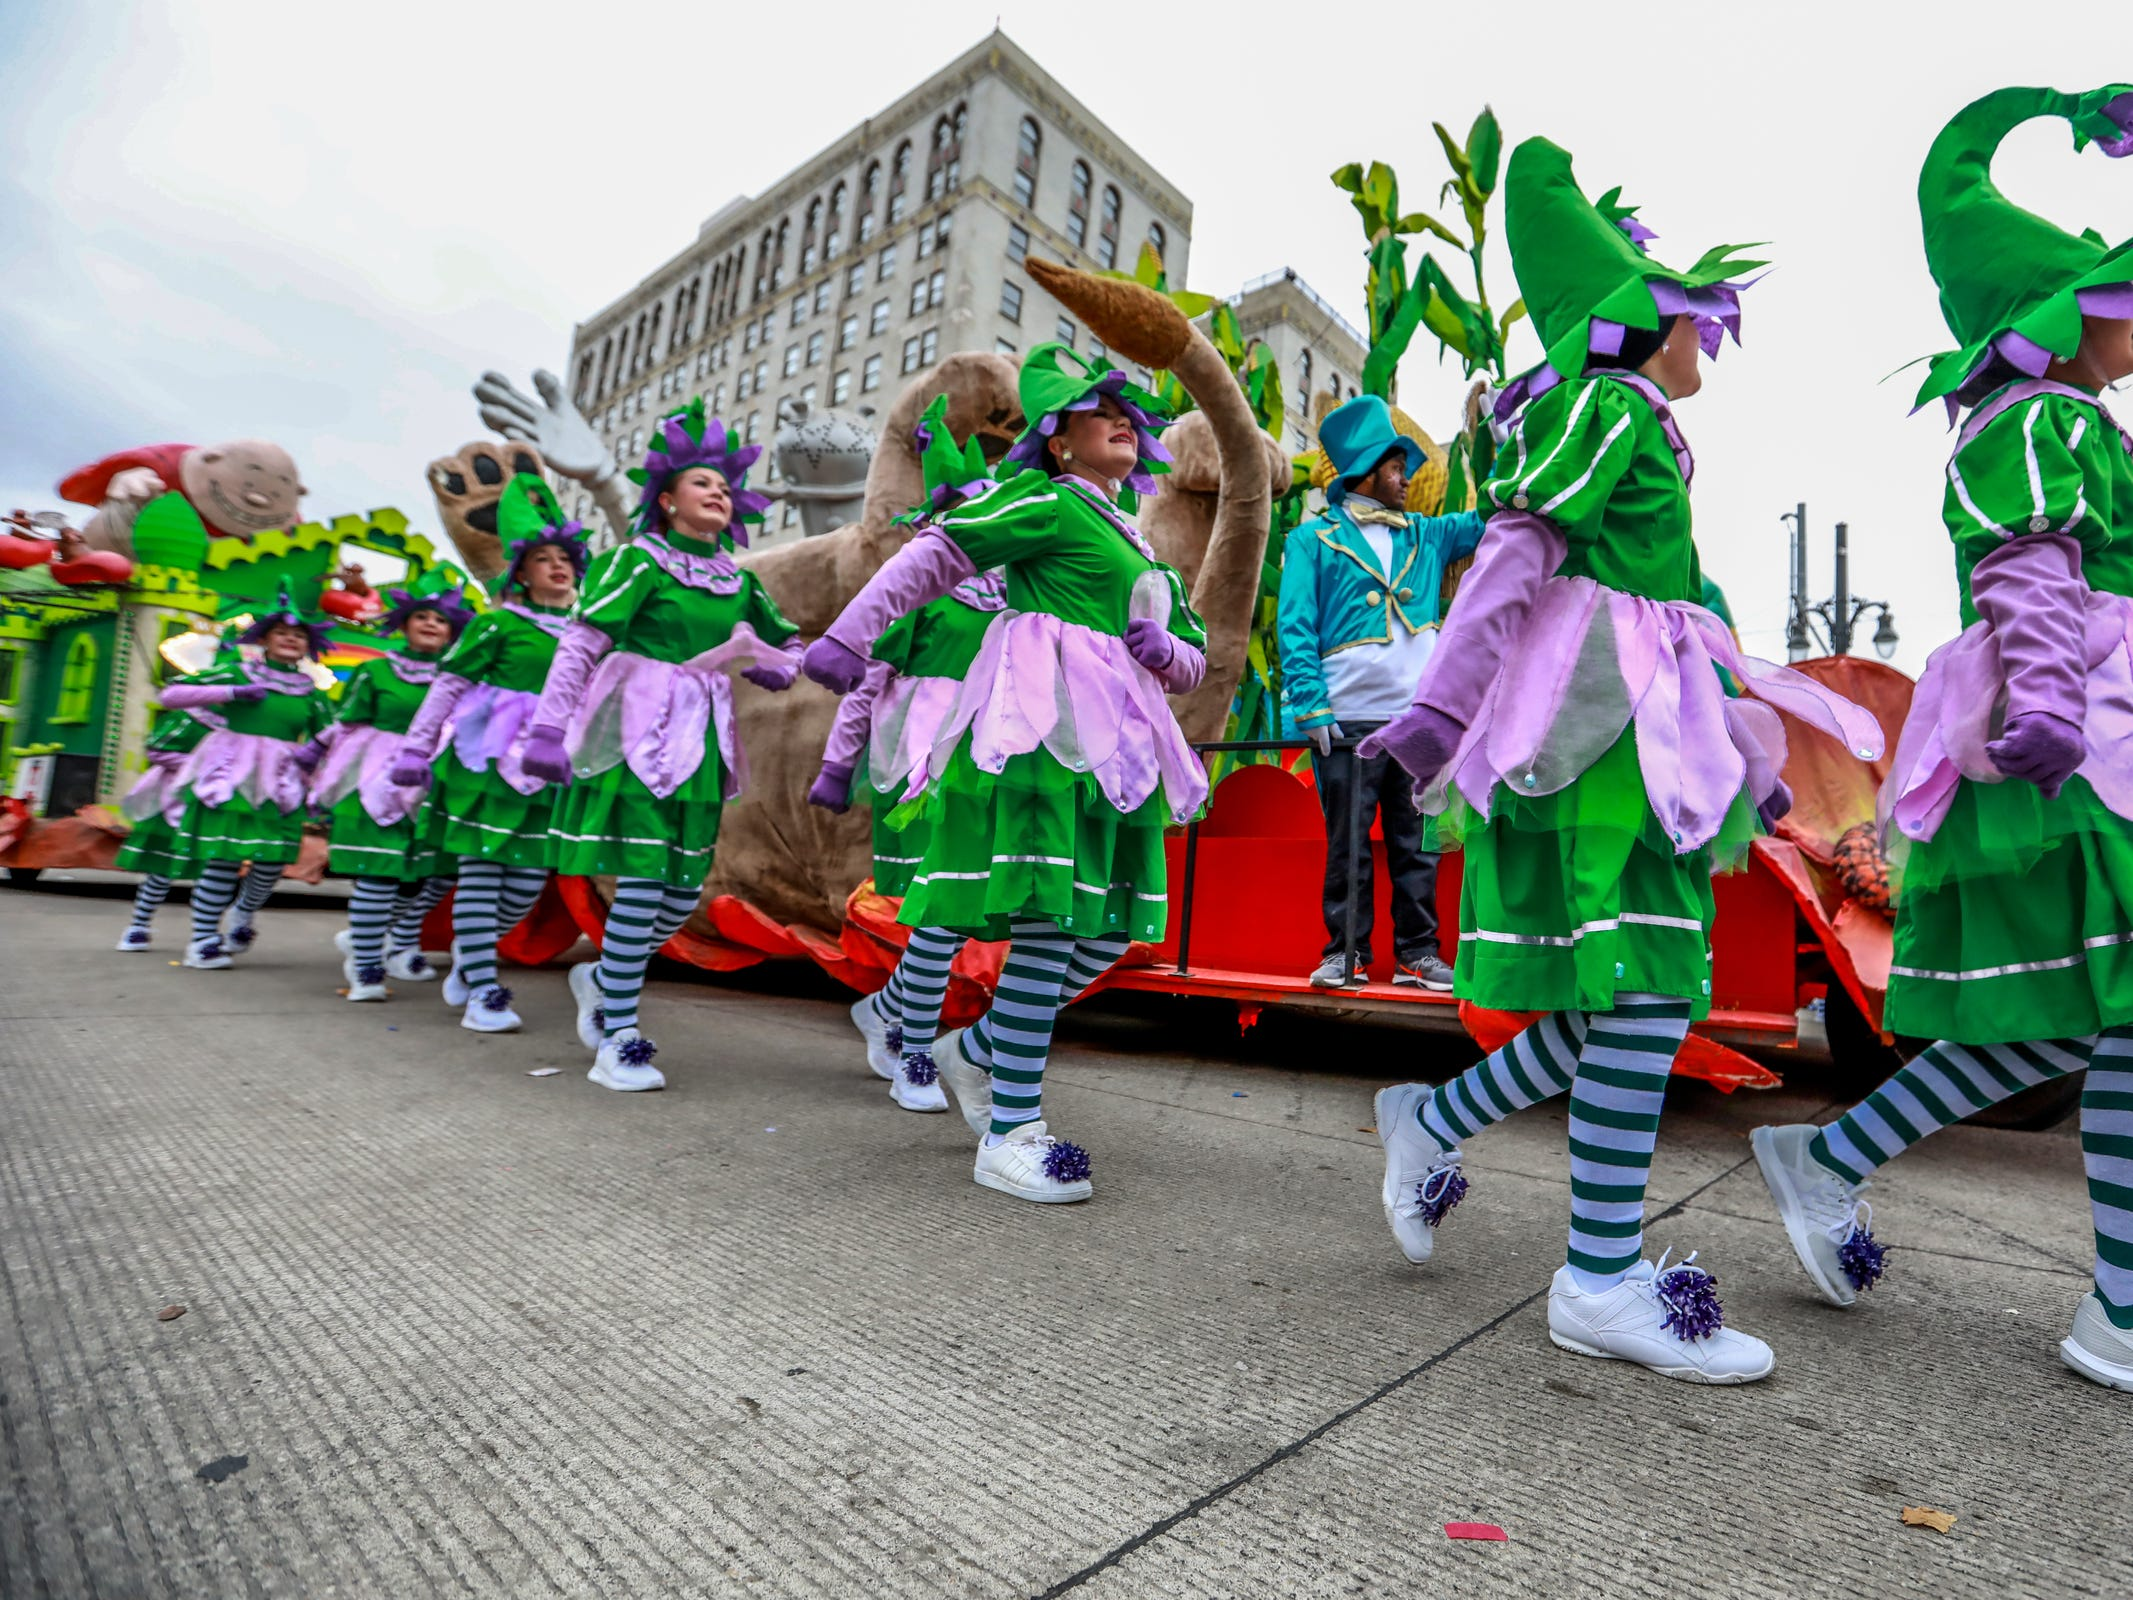 Dancers from Tina Marie's dance school, perform alongside a float, during America's Thanksgiving Parade in Detroit on Thursday, Nov. 22, 2018.